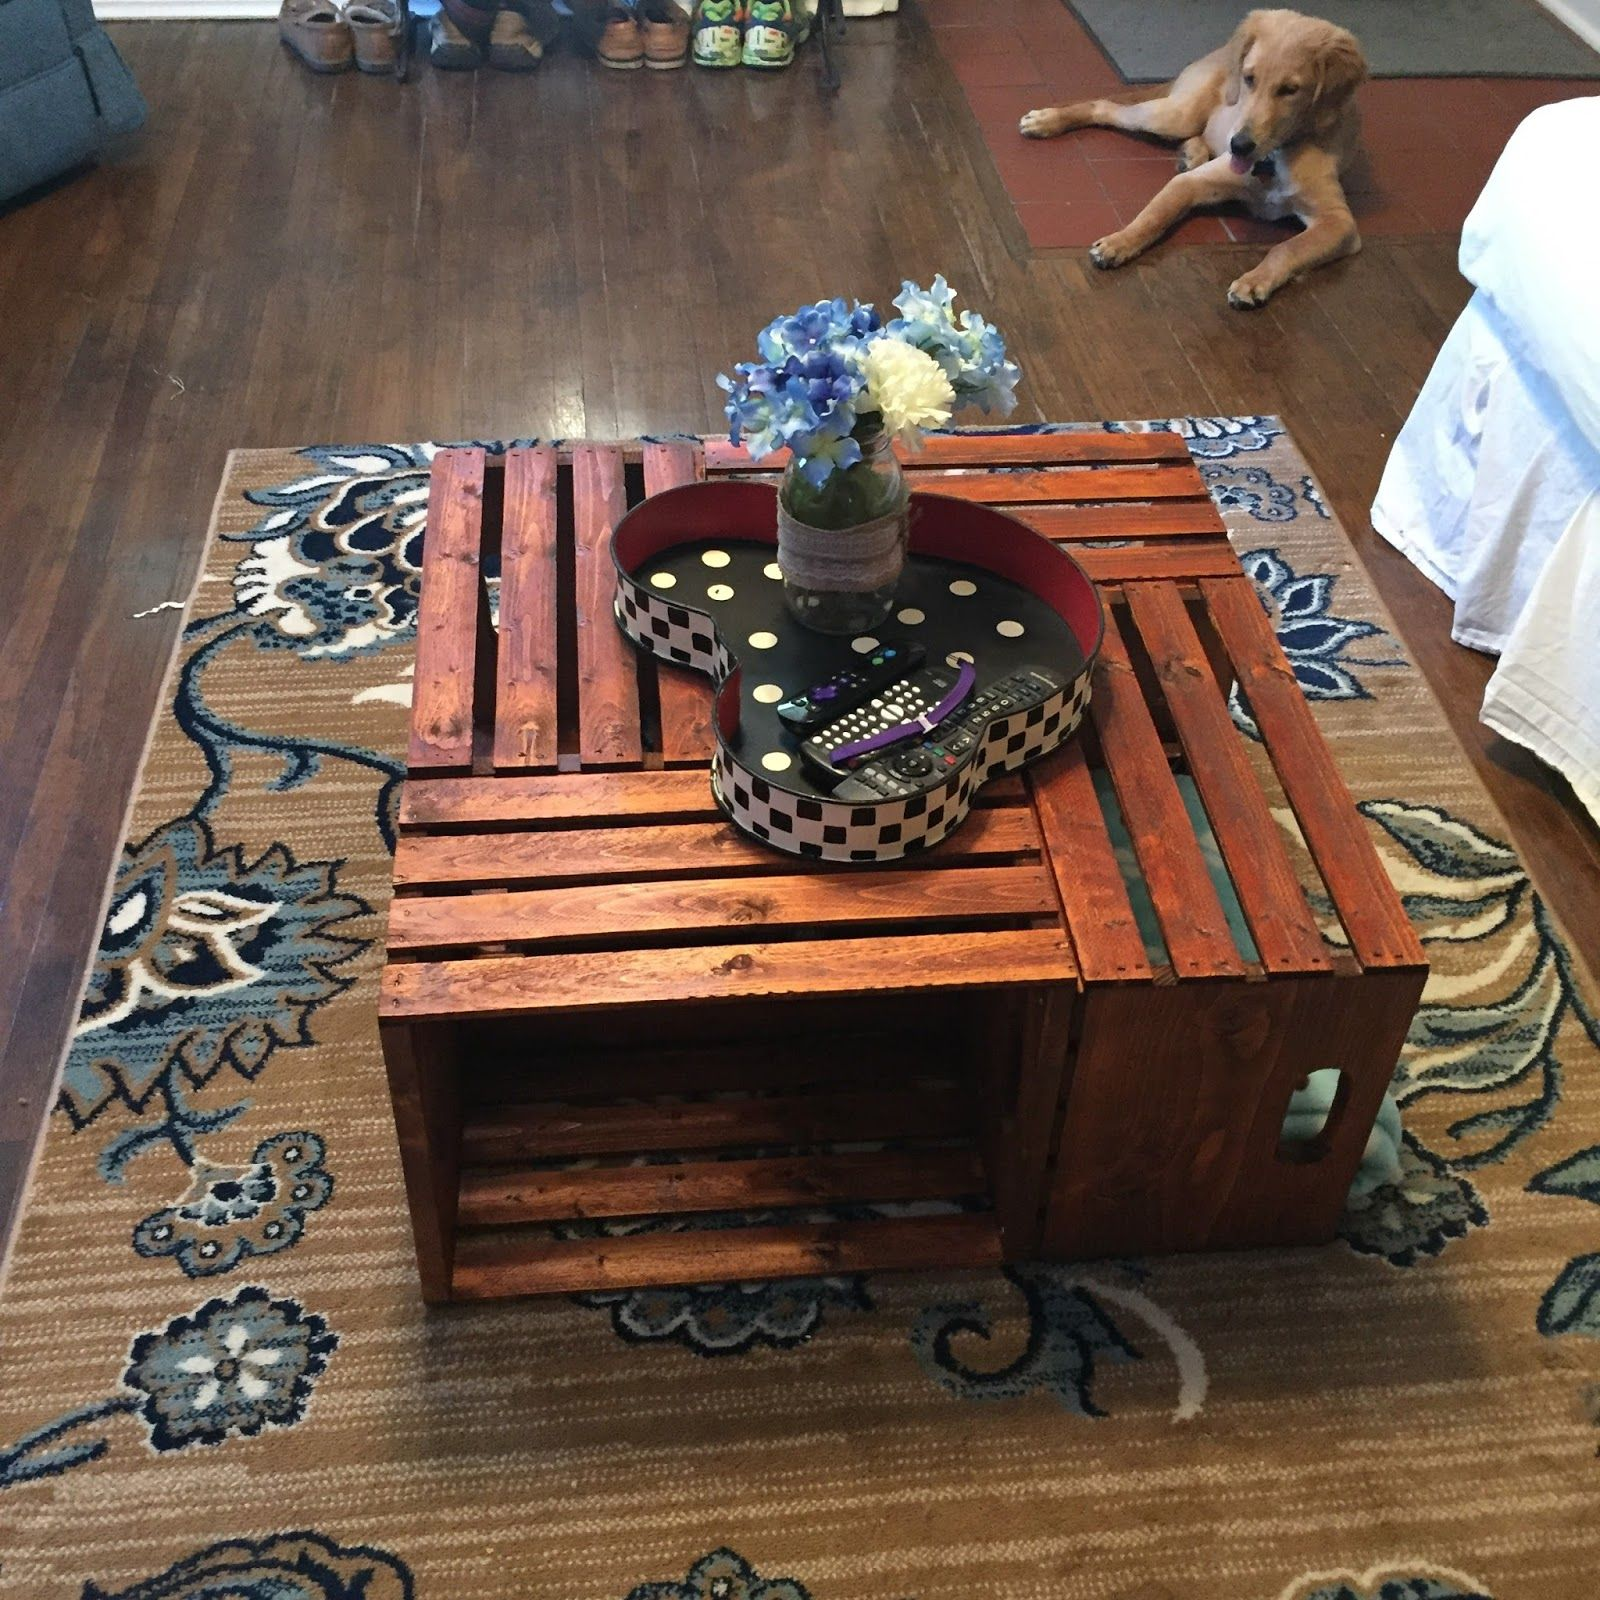 45+ Wooden crate coffee table diy ideas in 2021